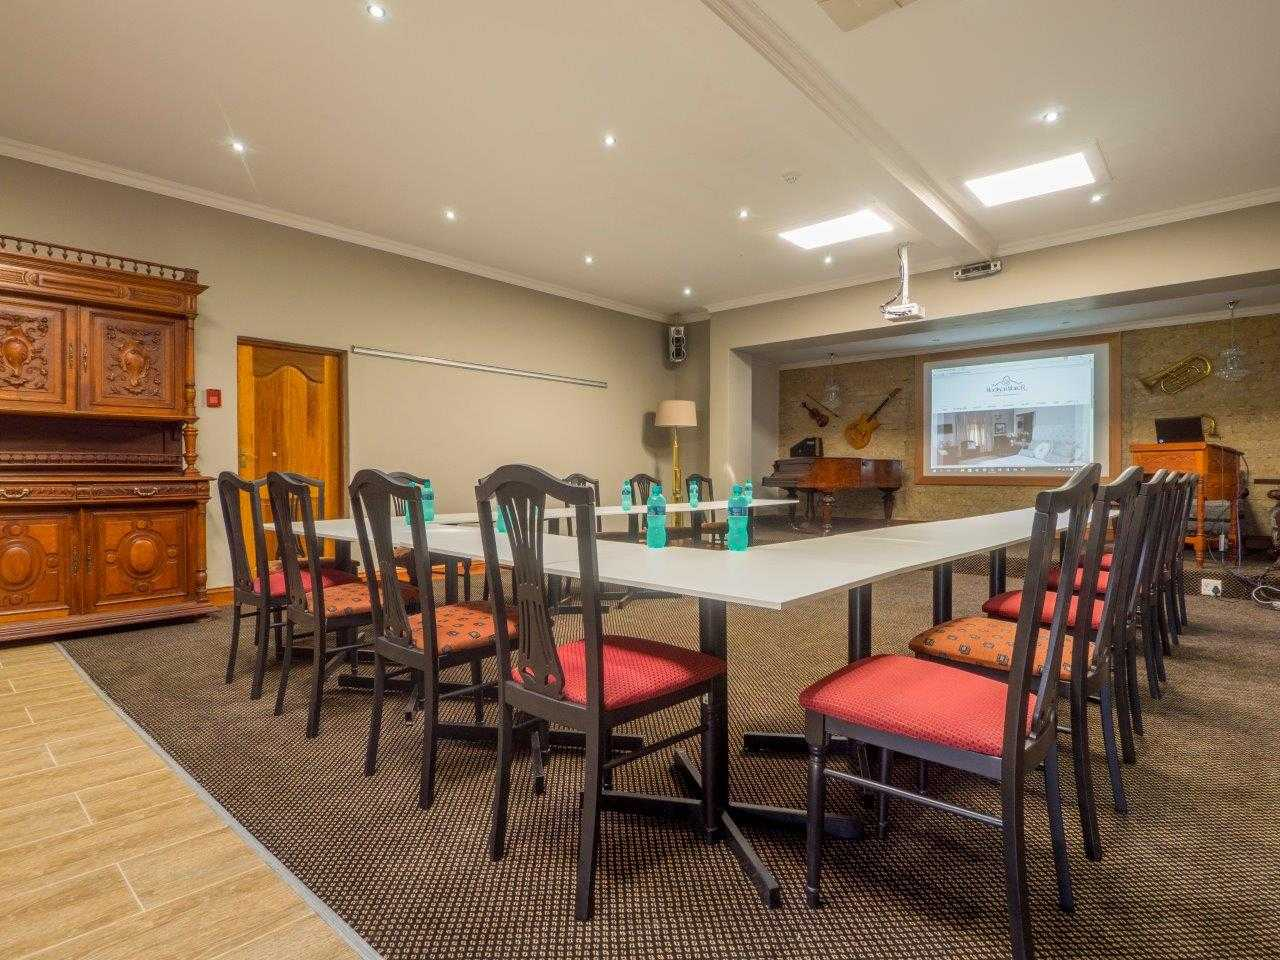 Madison manor boutique hotel knysna south africa for Boutique hotel 63